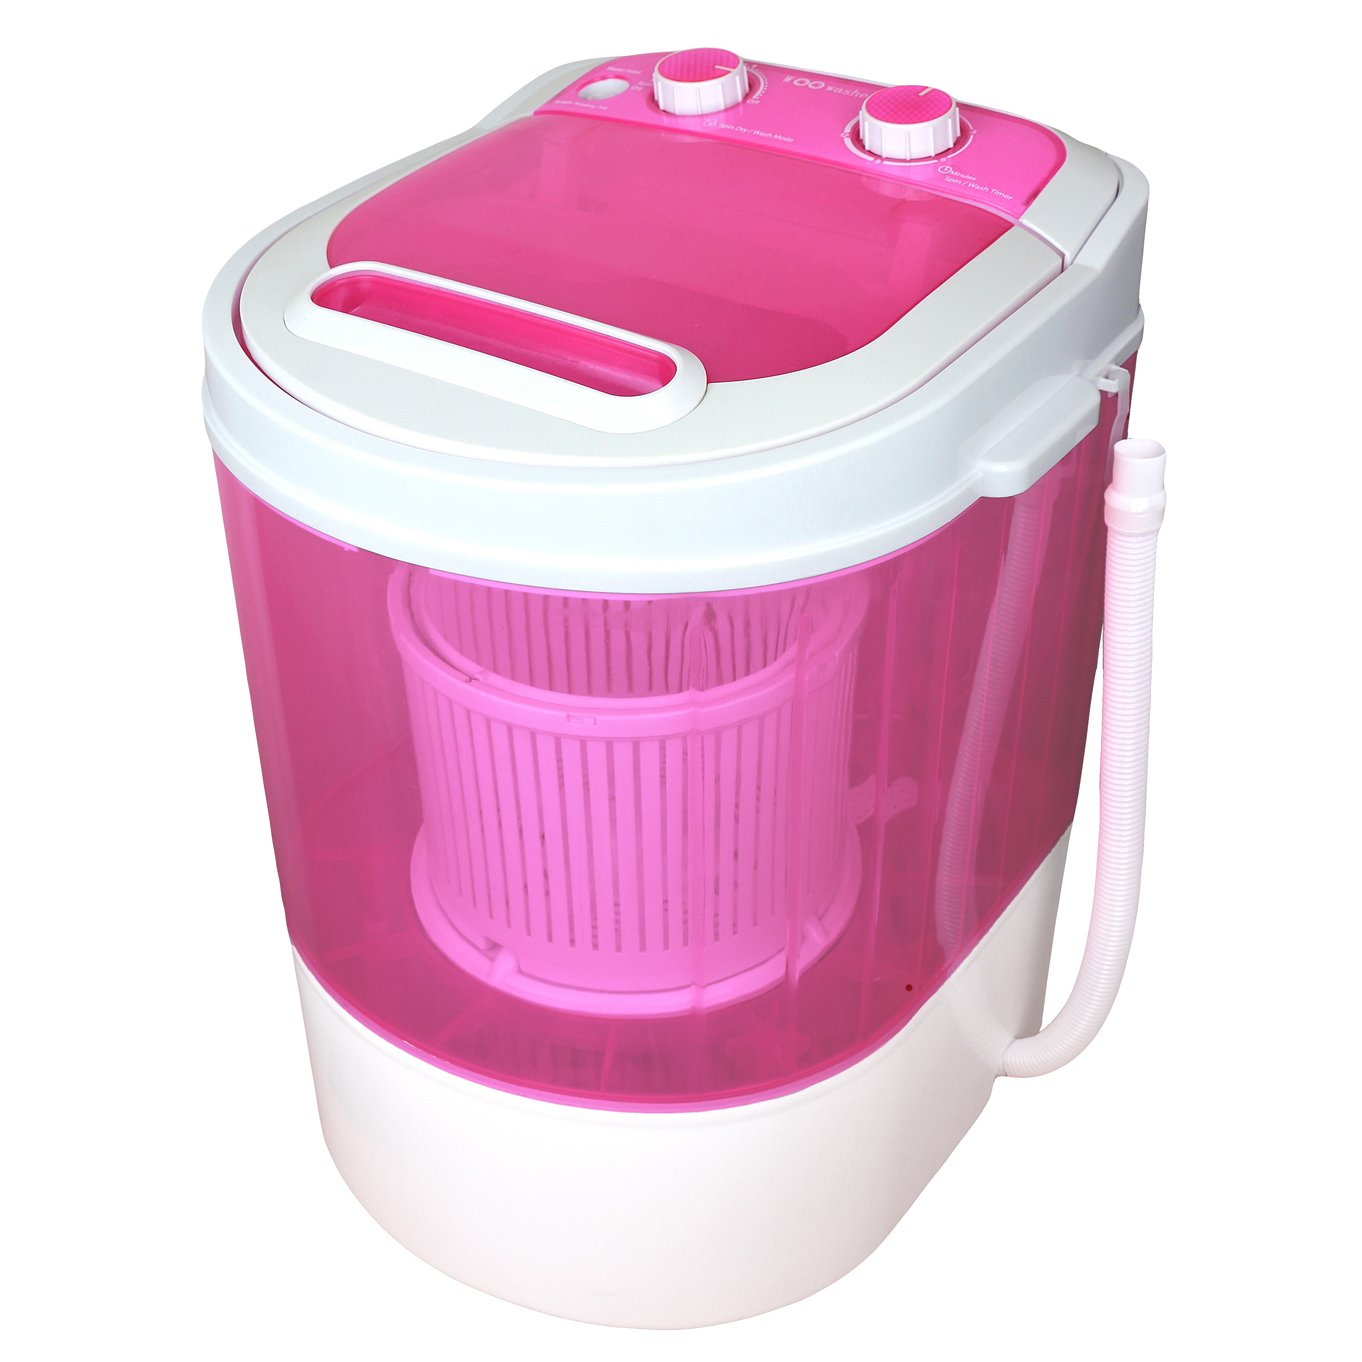 WOOWasher Mini Portable Washing Machine & Spin Dry 6.6 lbs Capacity Compact Laundry Washer for Clothes, Garments, Towels (Pink)